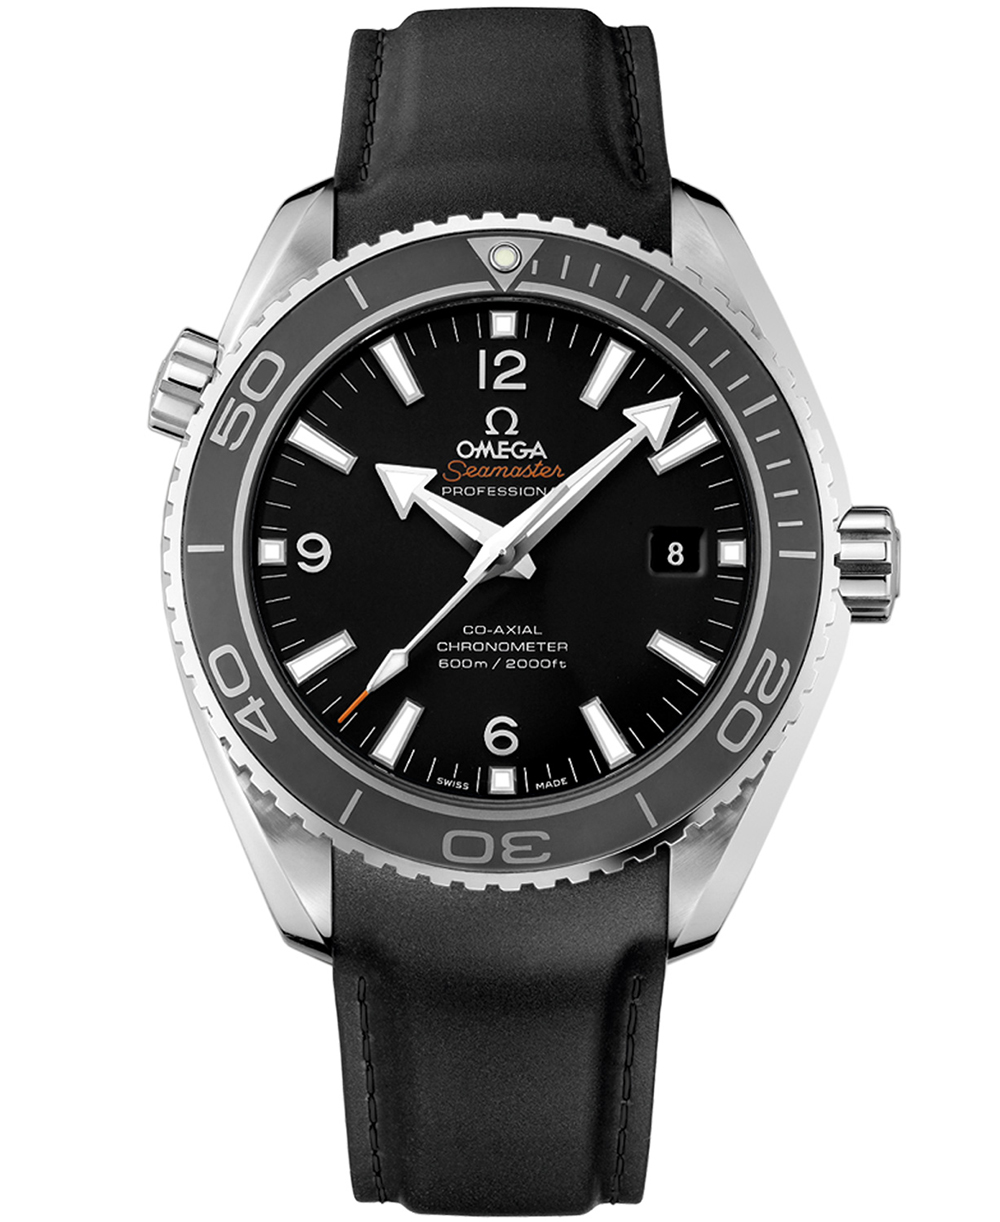 beat watches sailing watch categories gill equipment final race the